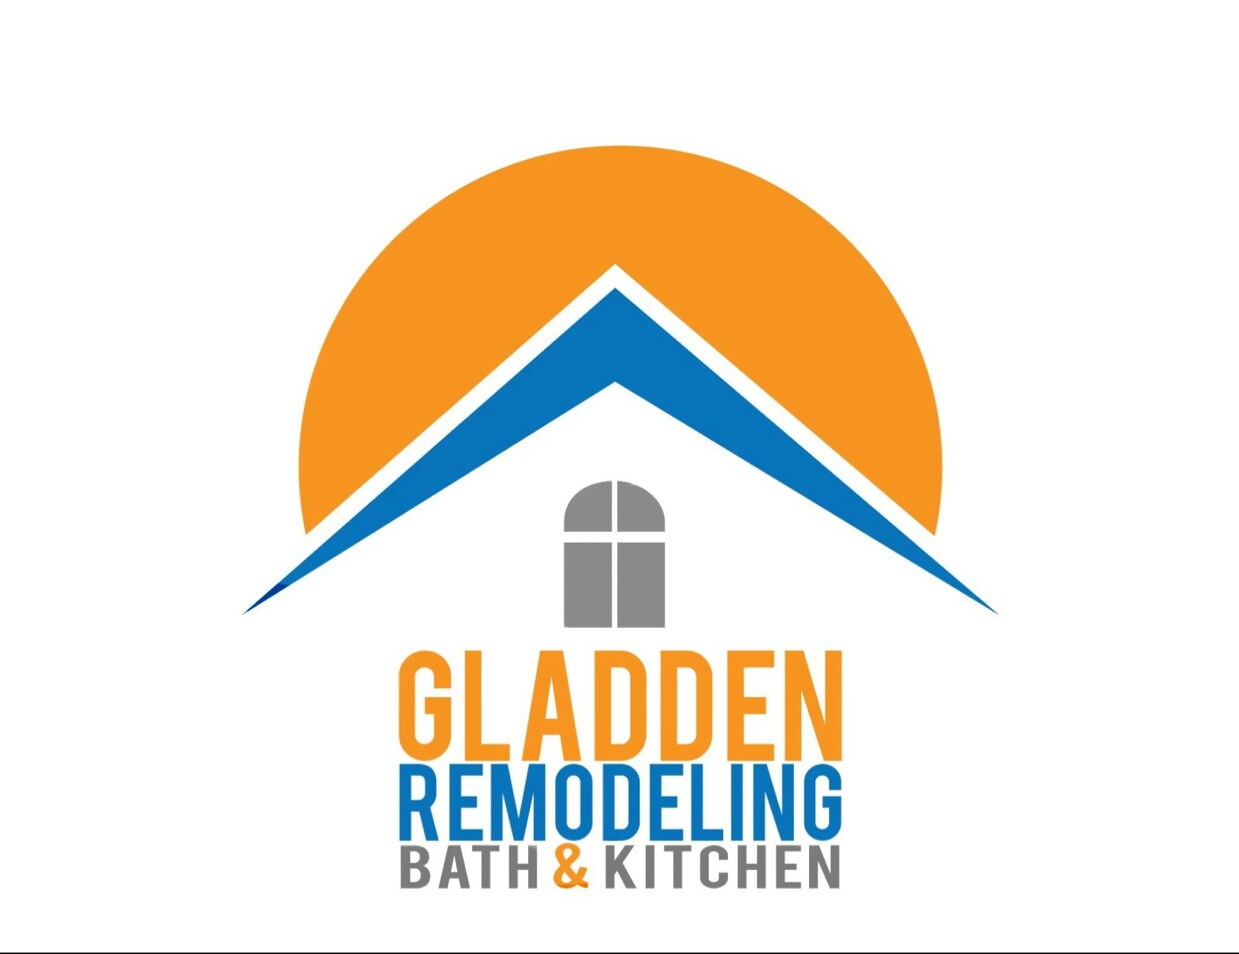 Gladden Remodeling Bath and Kitchen